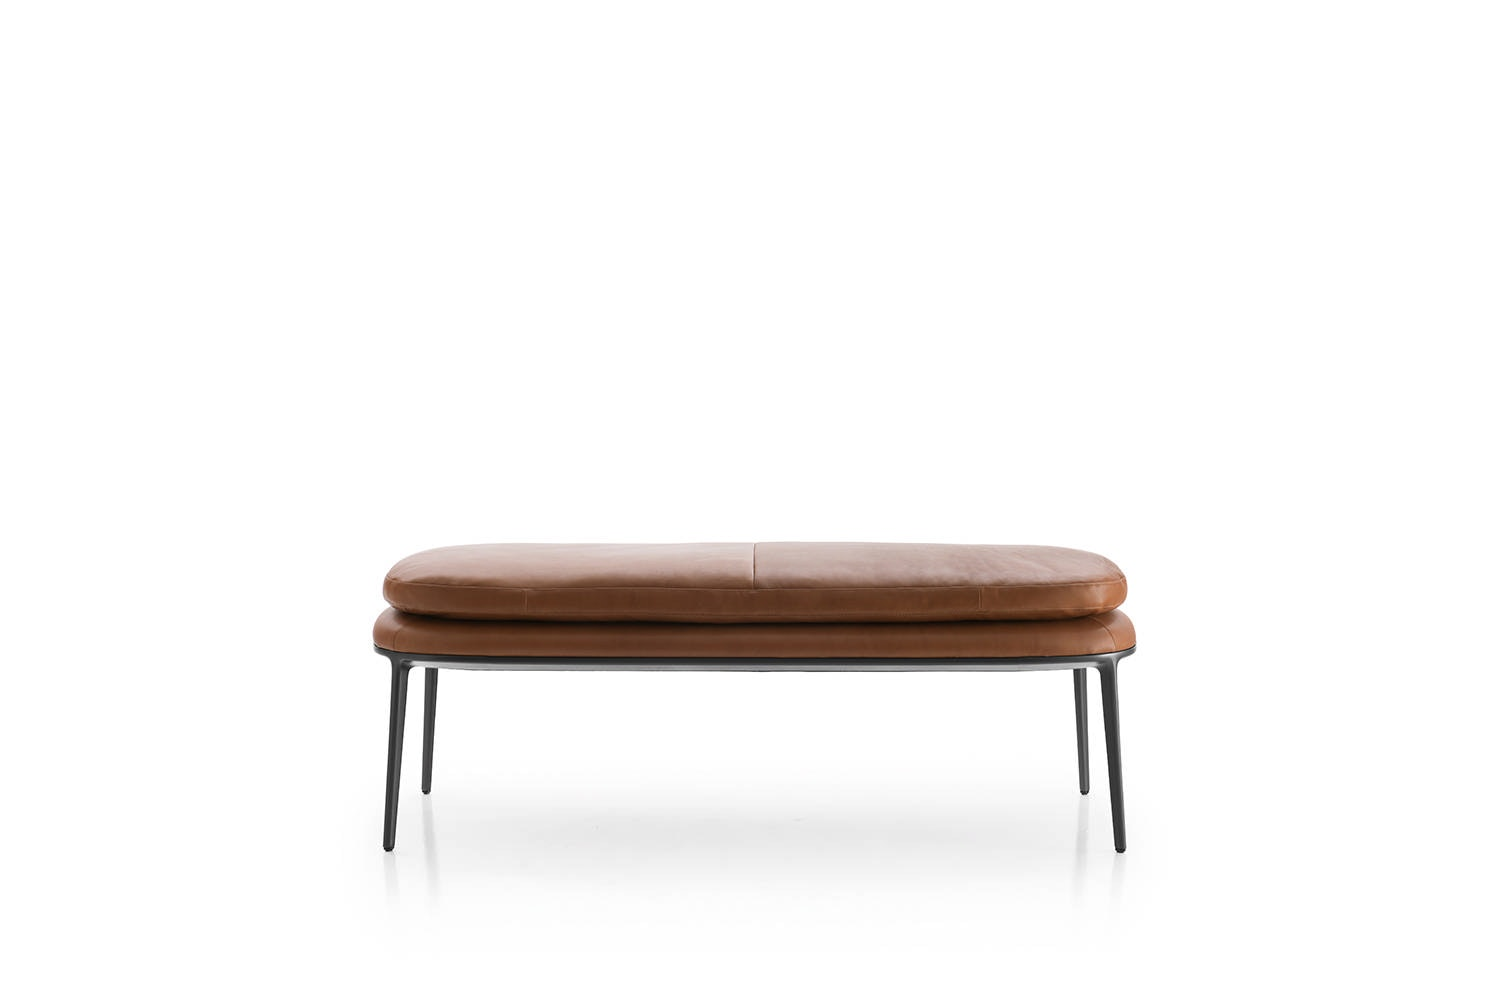 Caratos Bench by Antonio Citterio for Maxalto